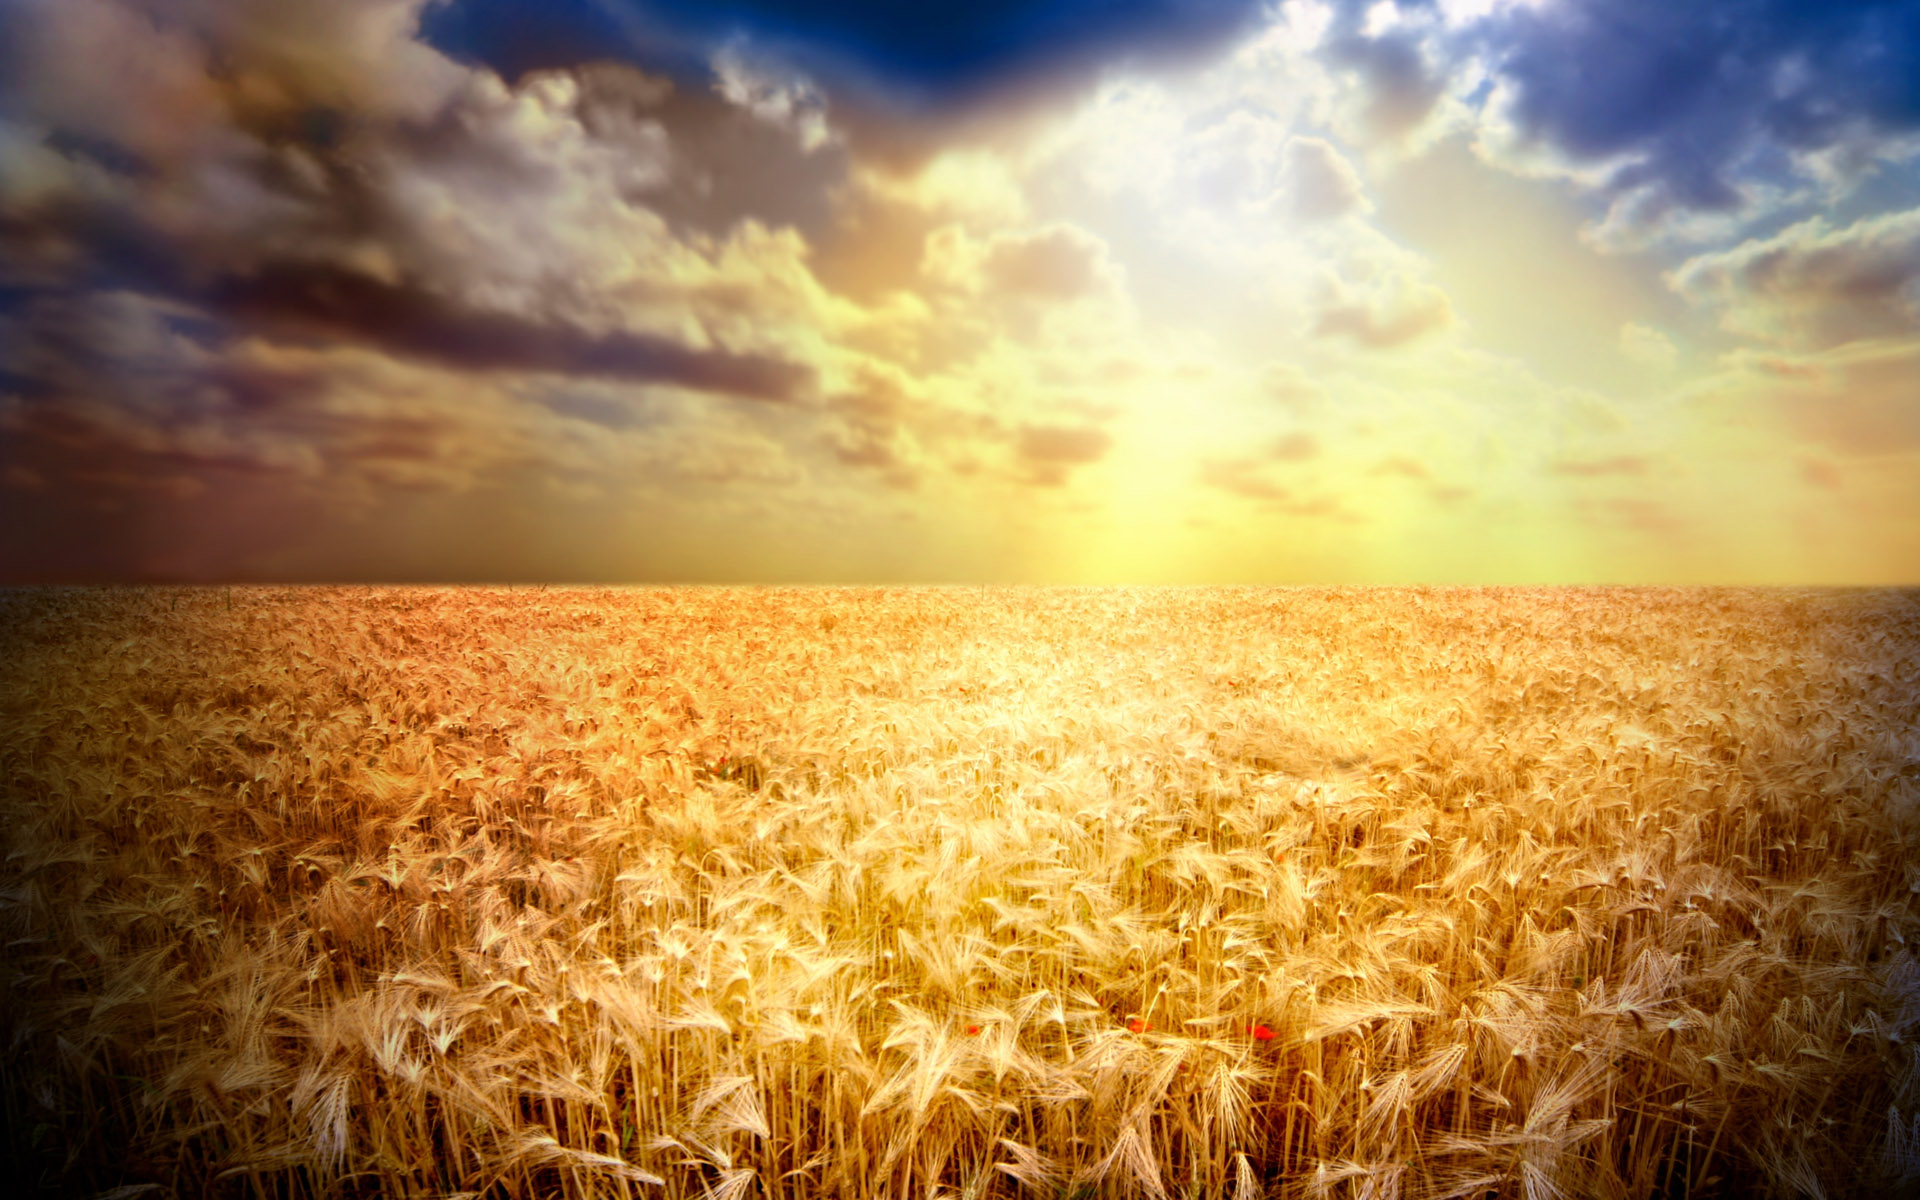 HD Cool Wheat Wallpaper For Background, Necole Avila 55